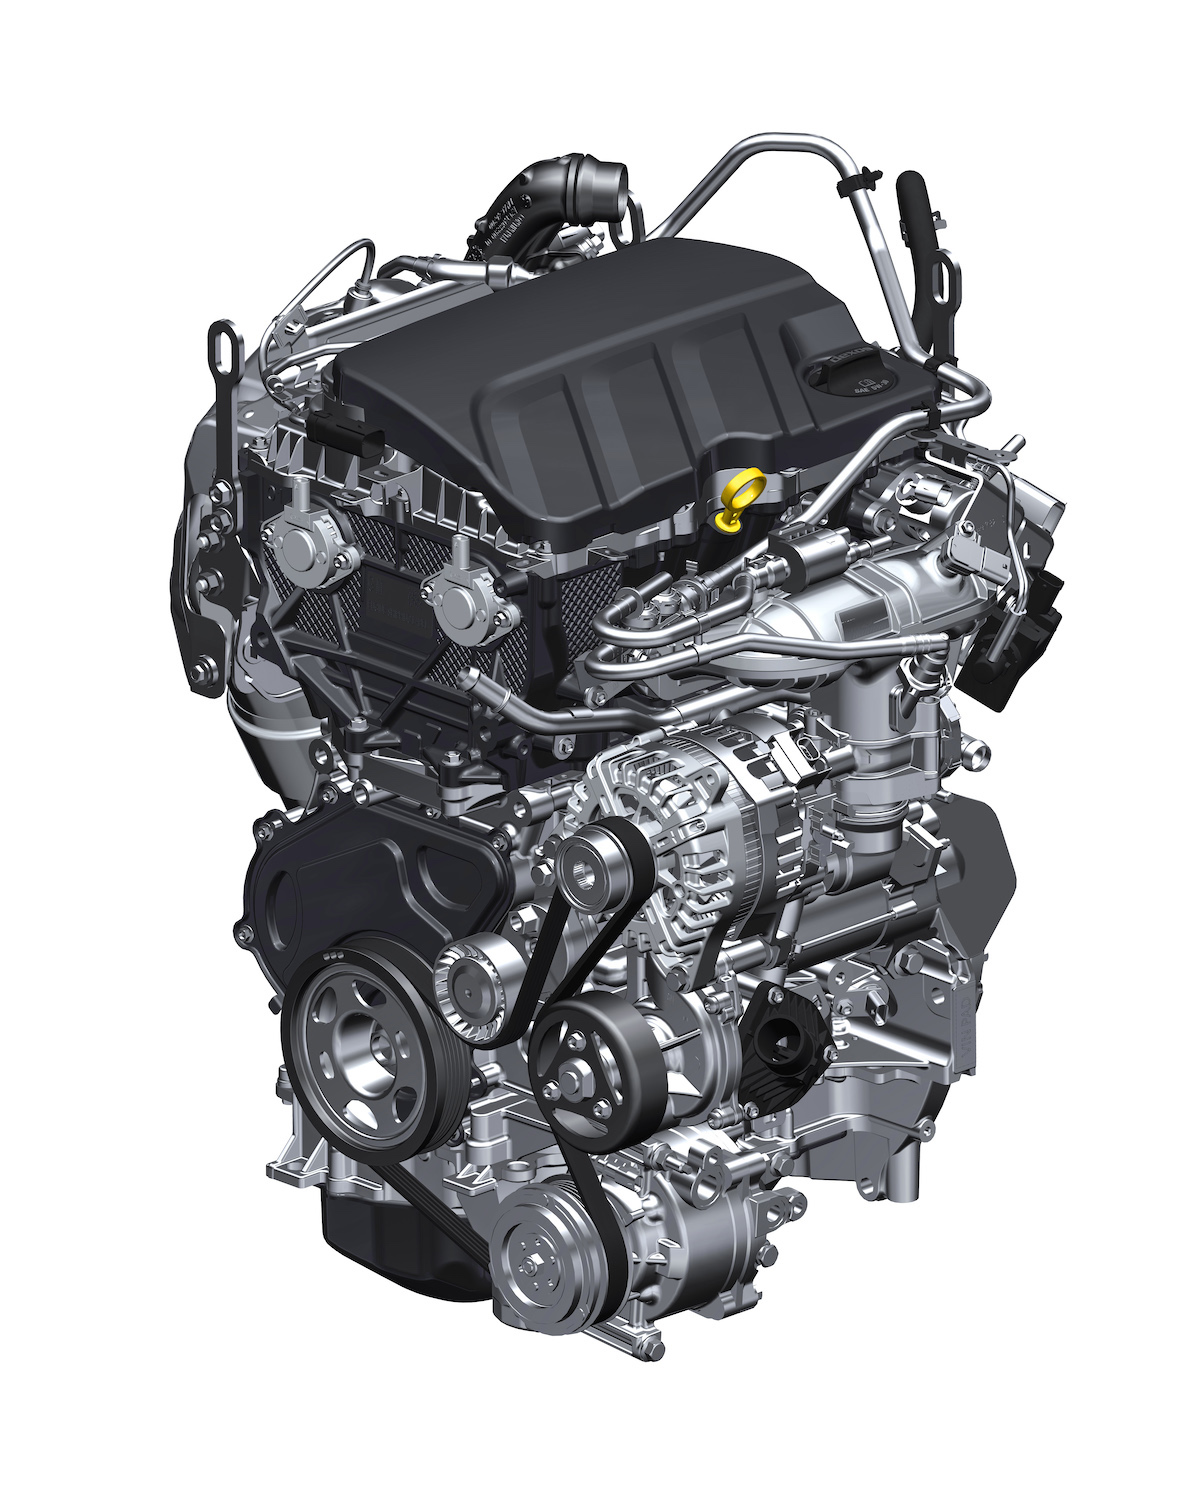 Opel-Astra-Three-Cylinders-1-2-Direct-Injection-Turbo-507652.jpg